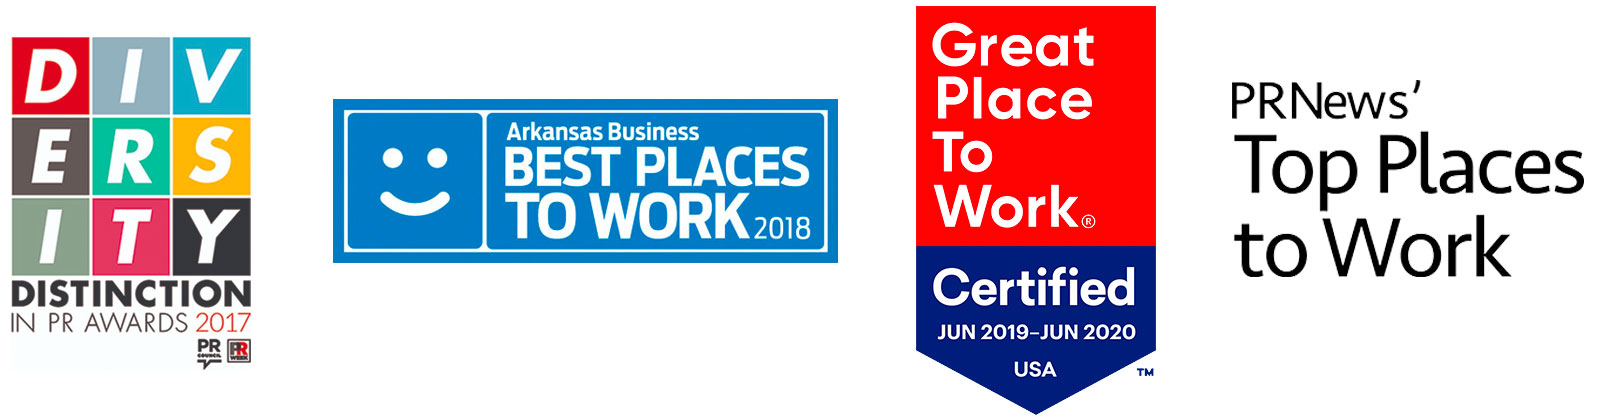 Awards logos – Diversity Distinction in PR, Arkansas Best Places to Work, Certified Great Place to Work, PRNews' Top Places to Work